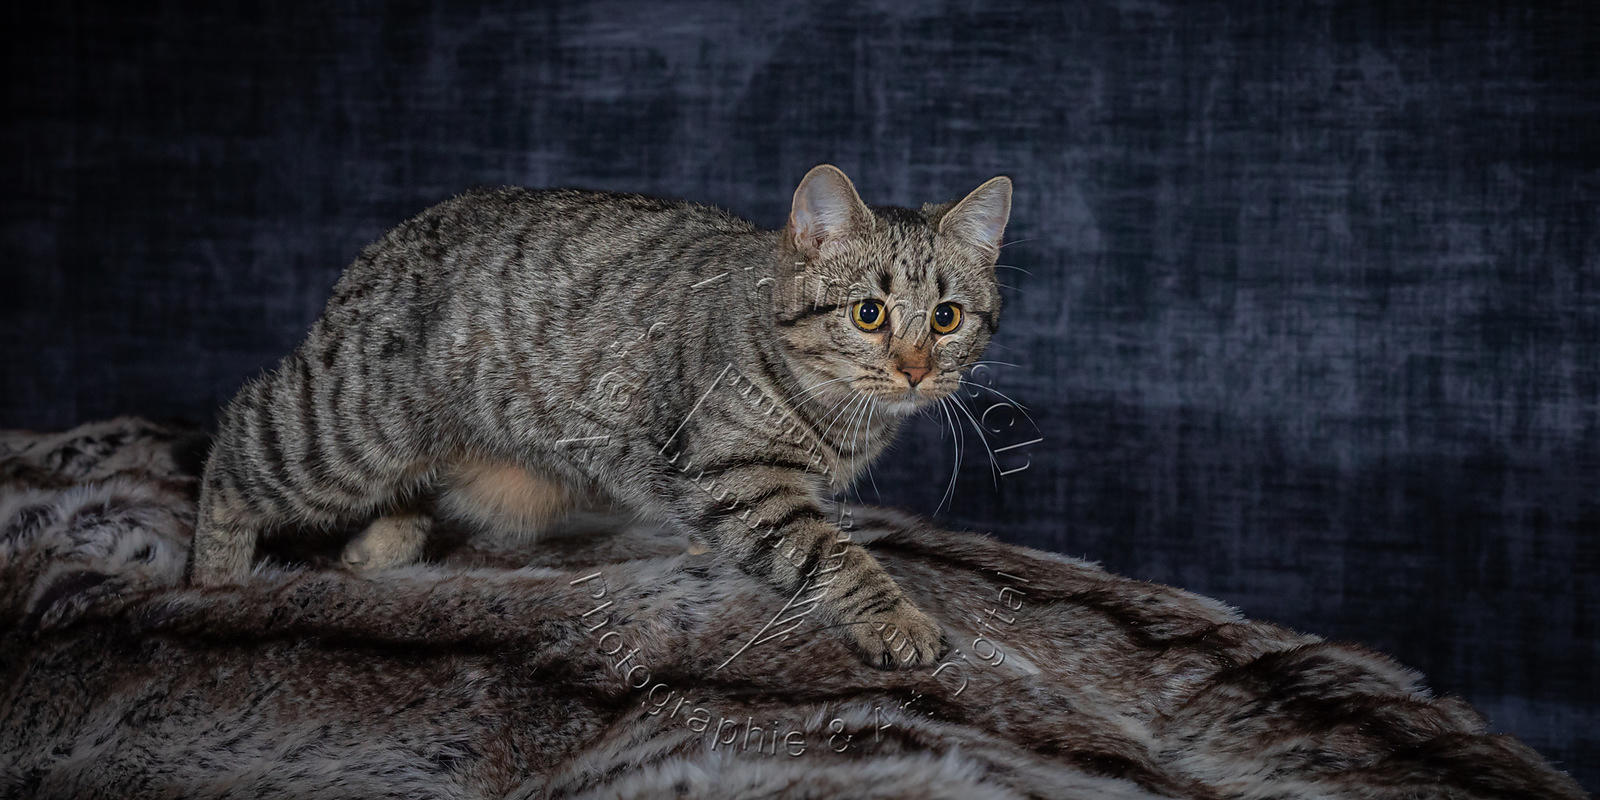 Photographie-Alain-Thimmesch-Chat-1088